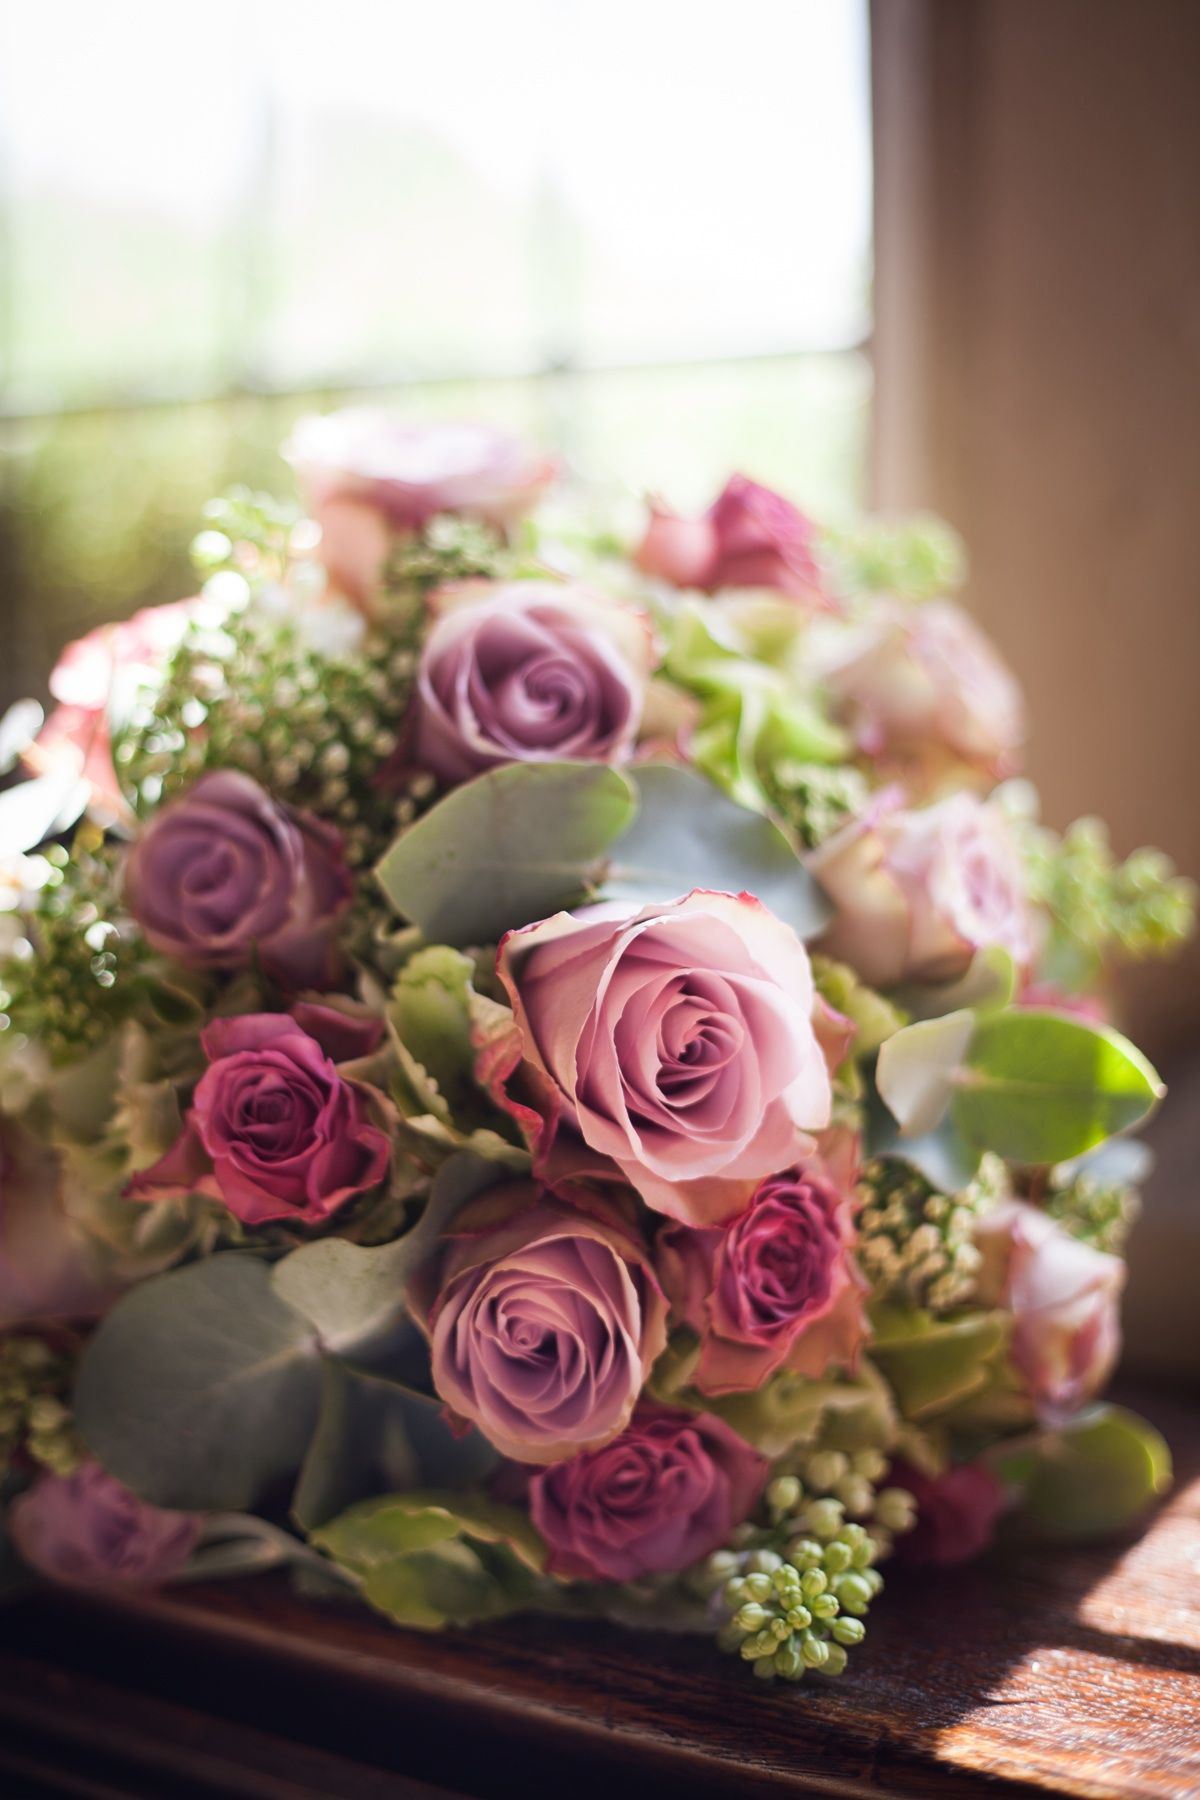 Boxford Wedding Tina Bolton Photography 2805 1200x1800 Pixels Old Dutch And Hypnose Roses